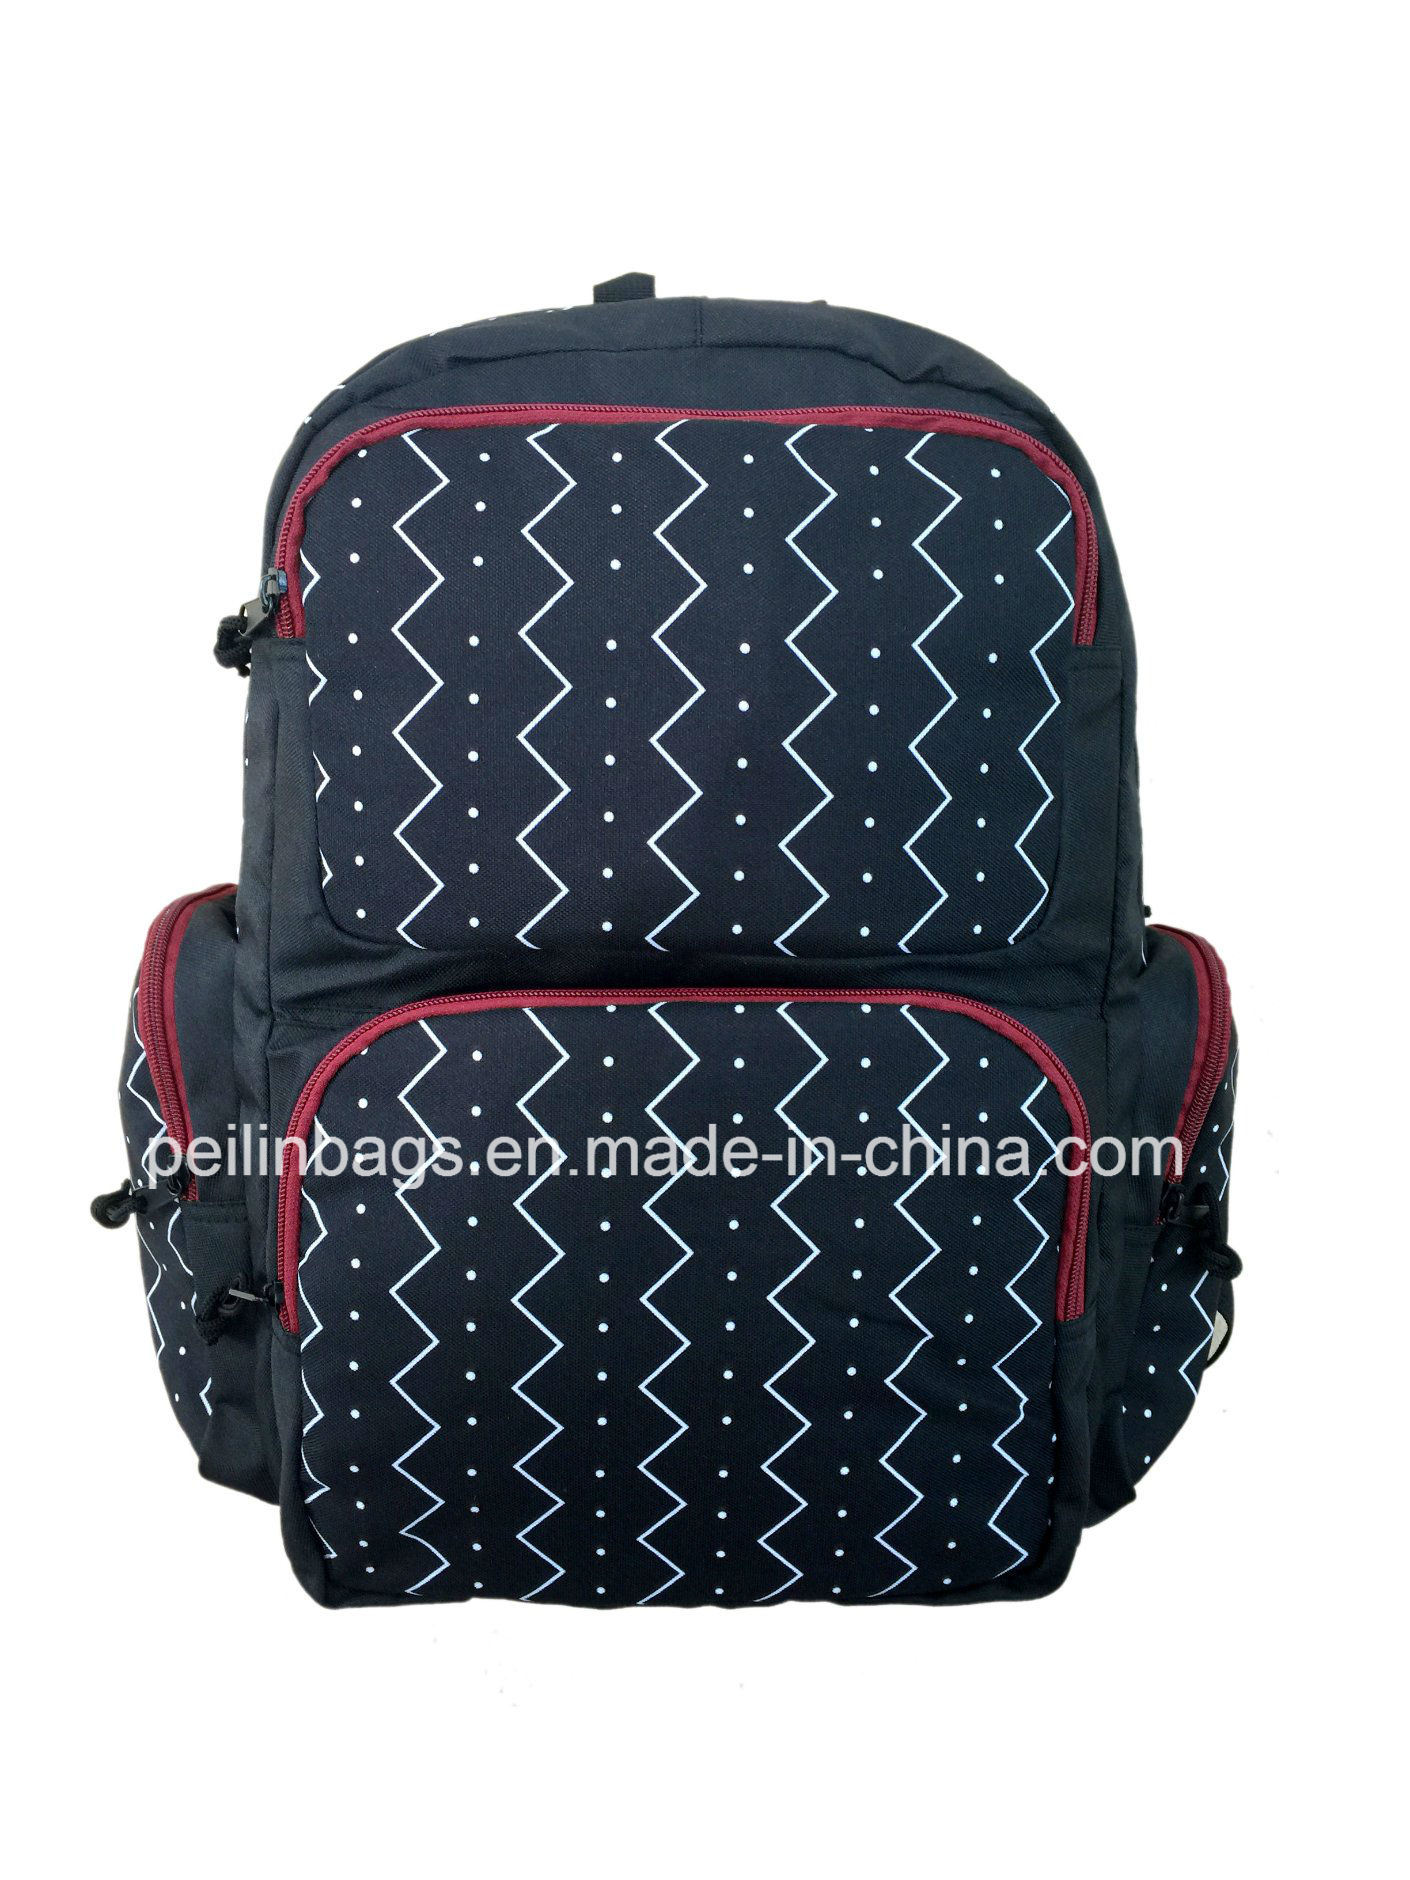 Stylish Multi-Compartment Backpack for School, Travel